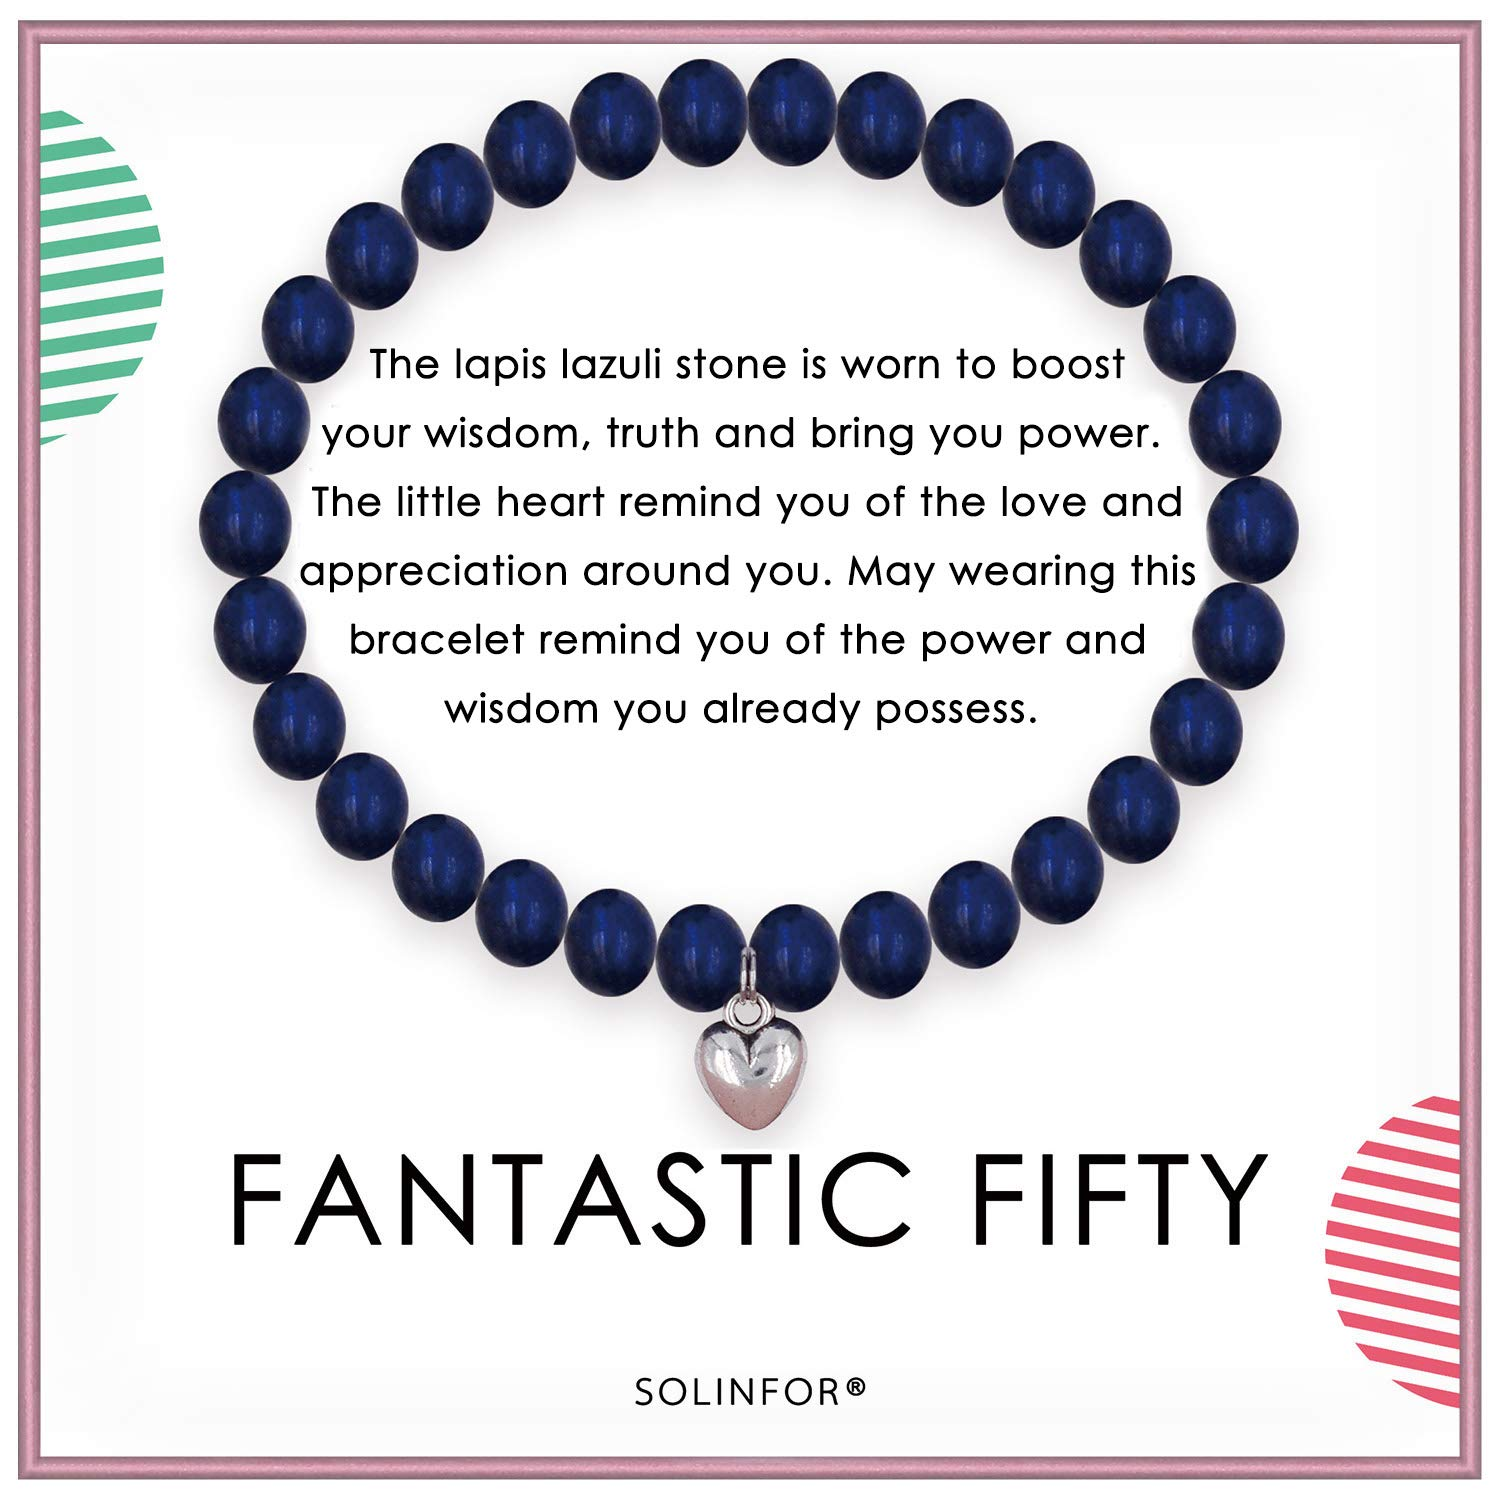 SOLINFOR 50th Birthday Gifts for Women - Lapis Lazuli Beads Bracelet - 50 Years Old Jewelry Gift Idea for Her by SOLINFOR